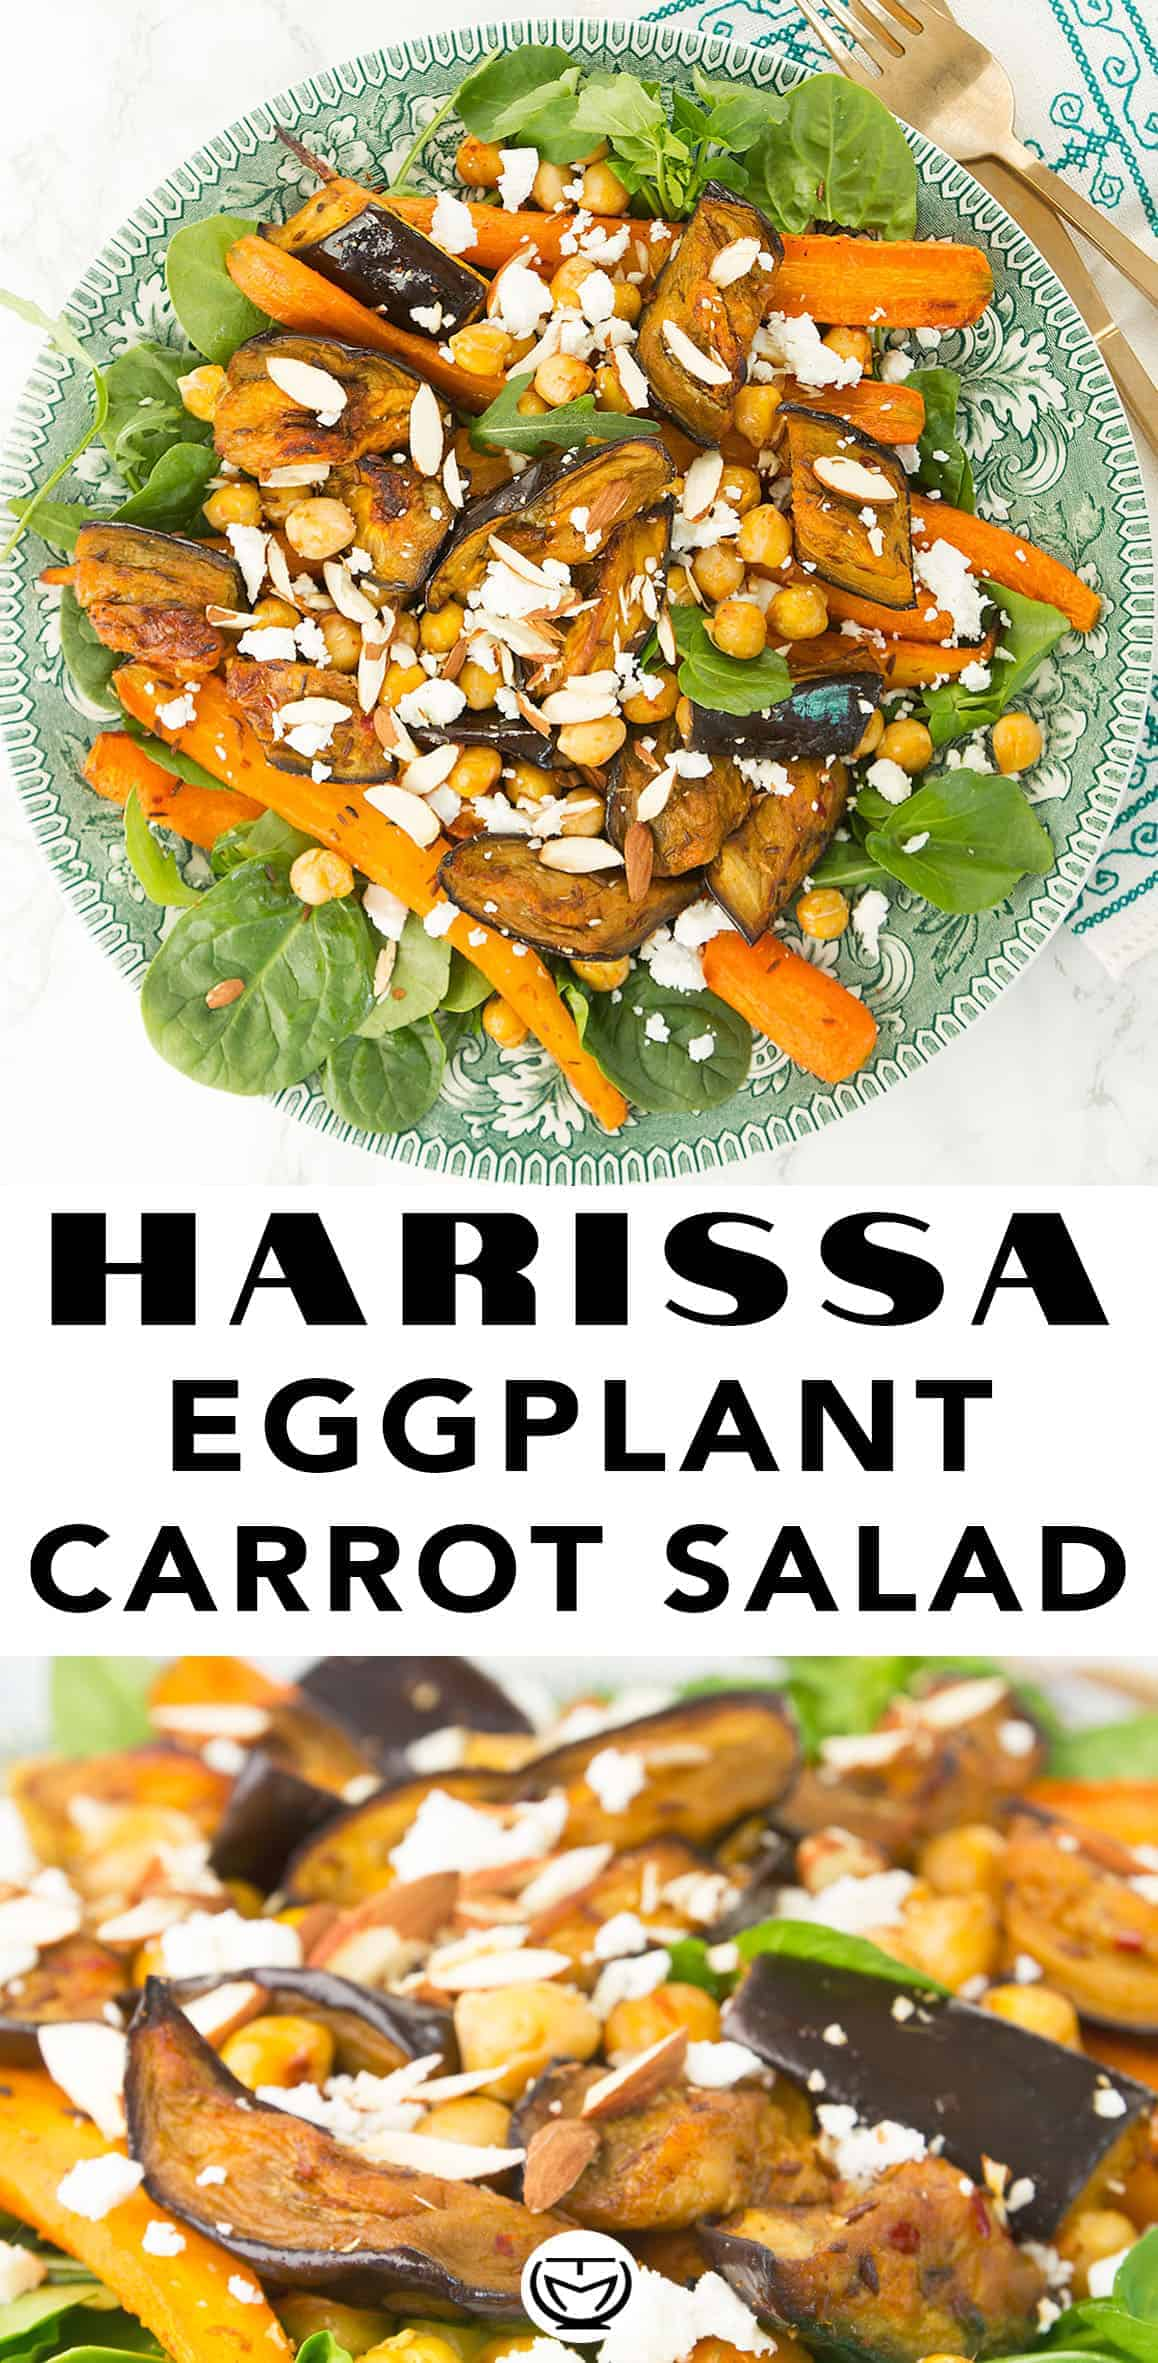 This sheet pan harissa eggplant and carrot salad is full of delicious flavors and textures. The sweetness of roasted eggplants and carrots is enhanced by the spicy harissa, while the tangy feta and lemon juice balance out all the flavours perfectly. You will love it! #mealprep #harissarecipes #sheetpandinners #vegetarianmealprep